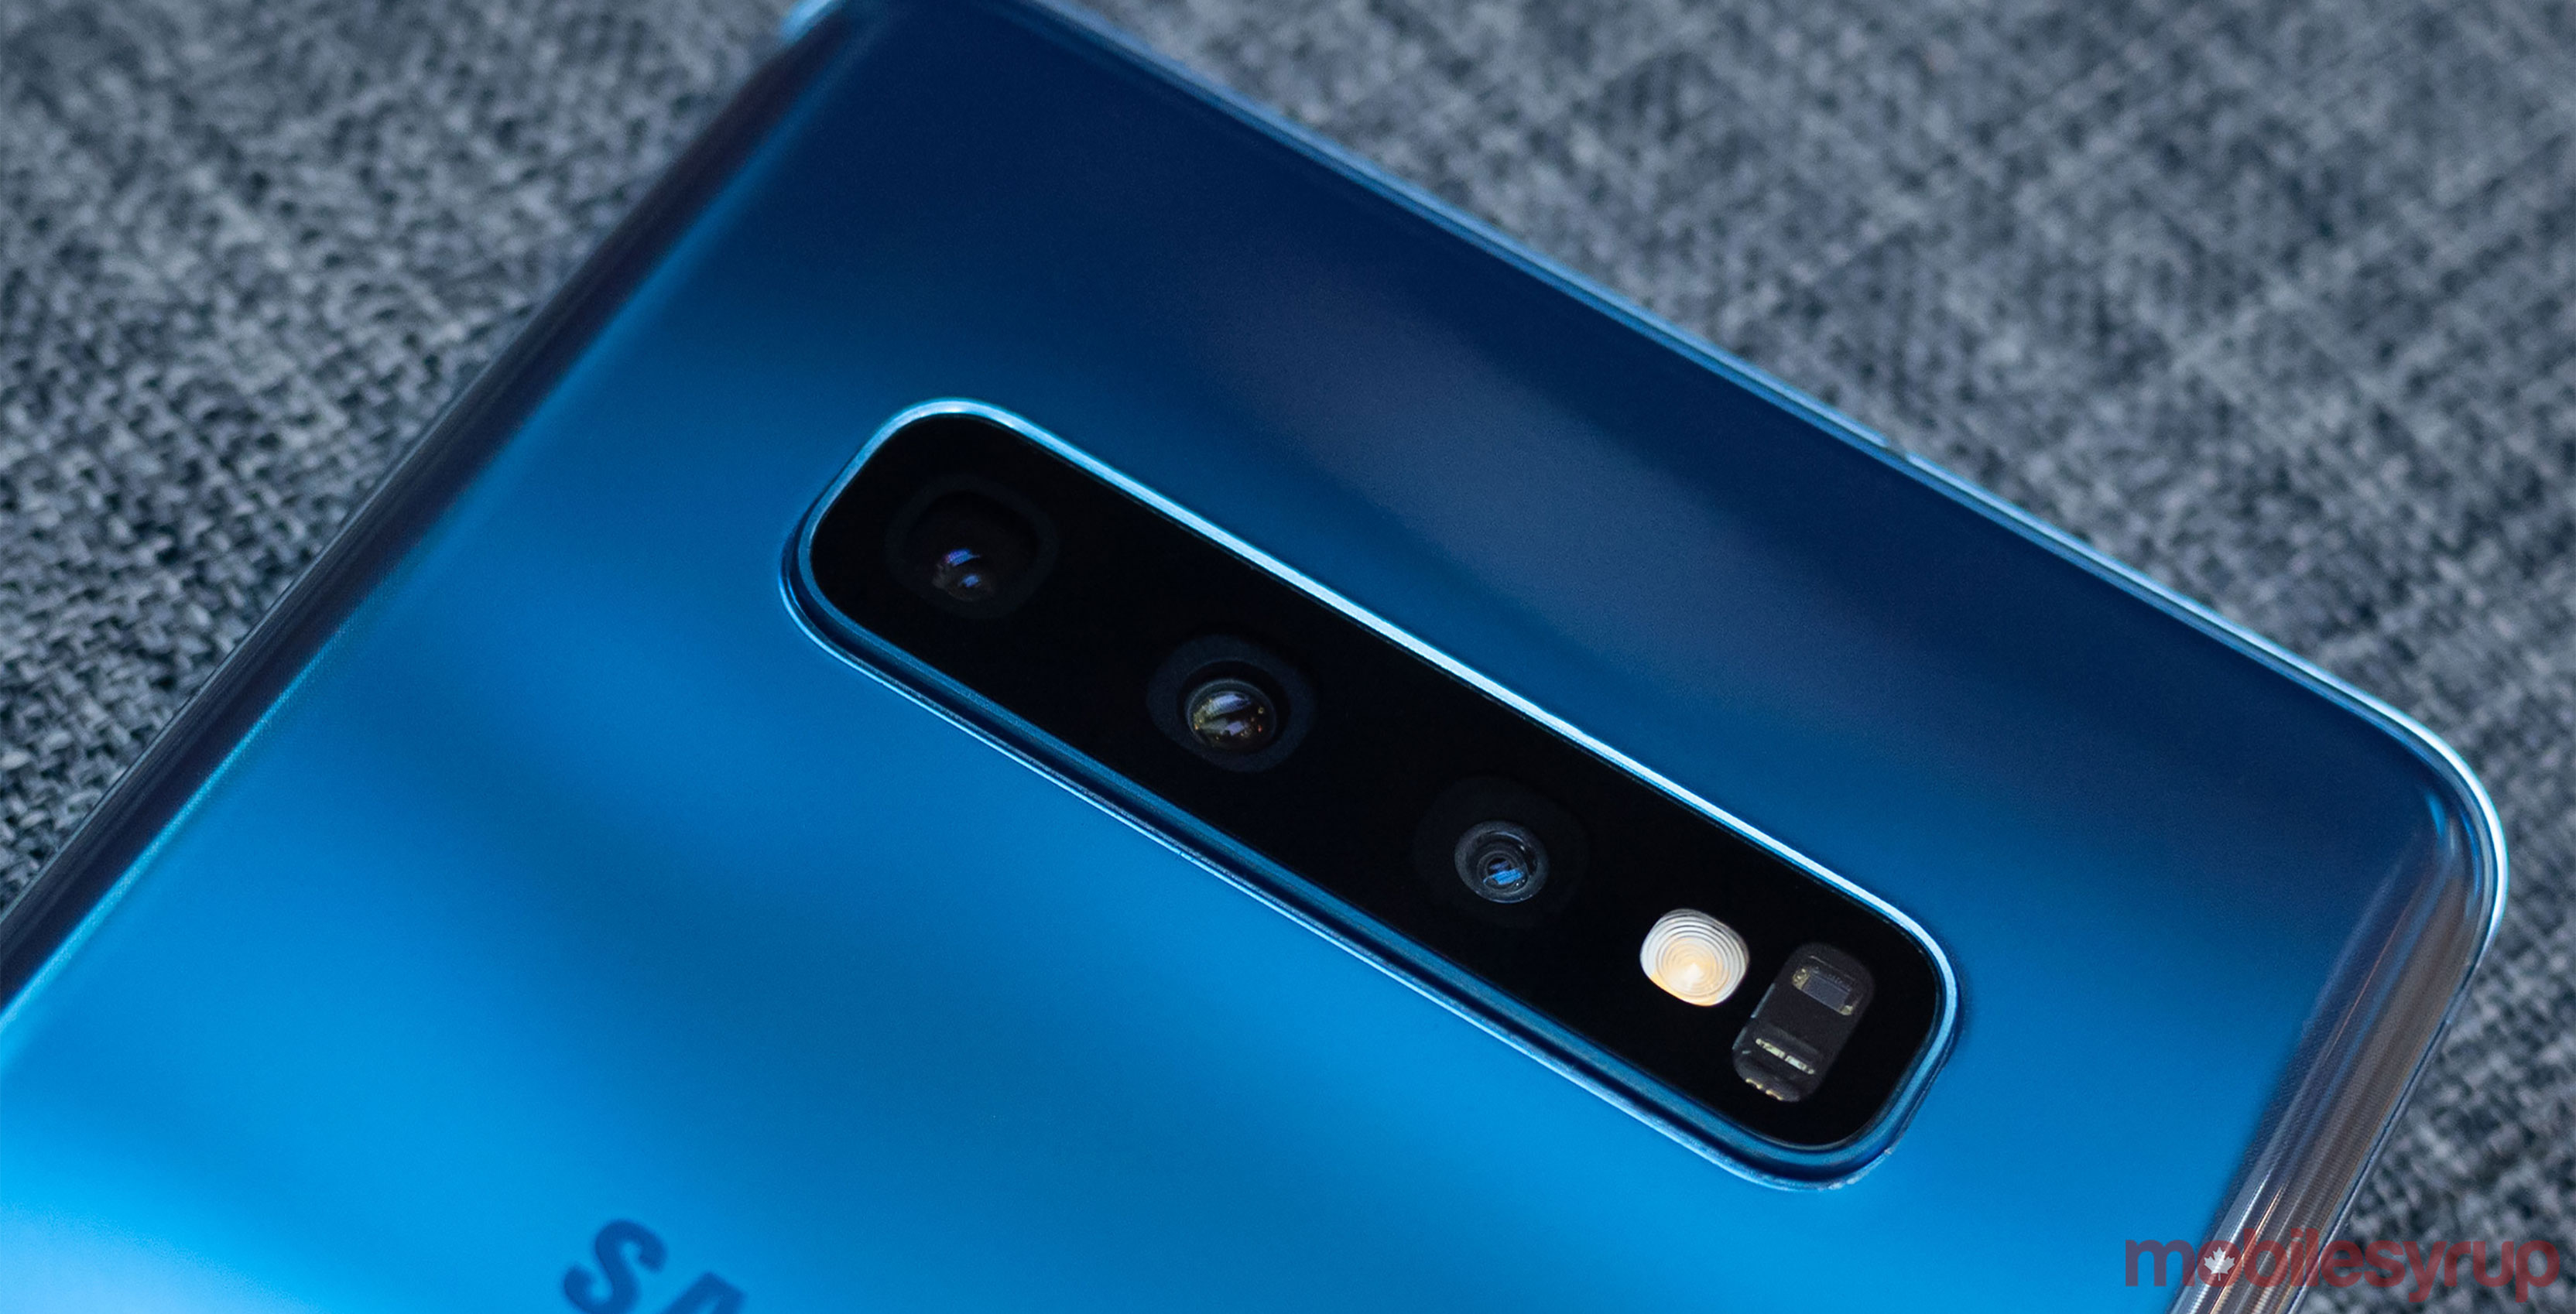 Samsung Galaxy S10 and S10+ get dedicated 'Night Mode' with